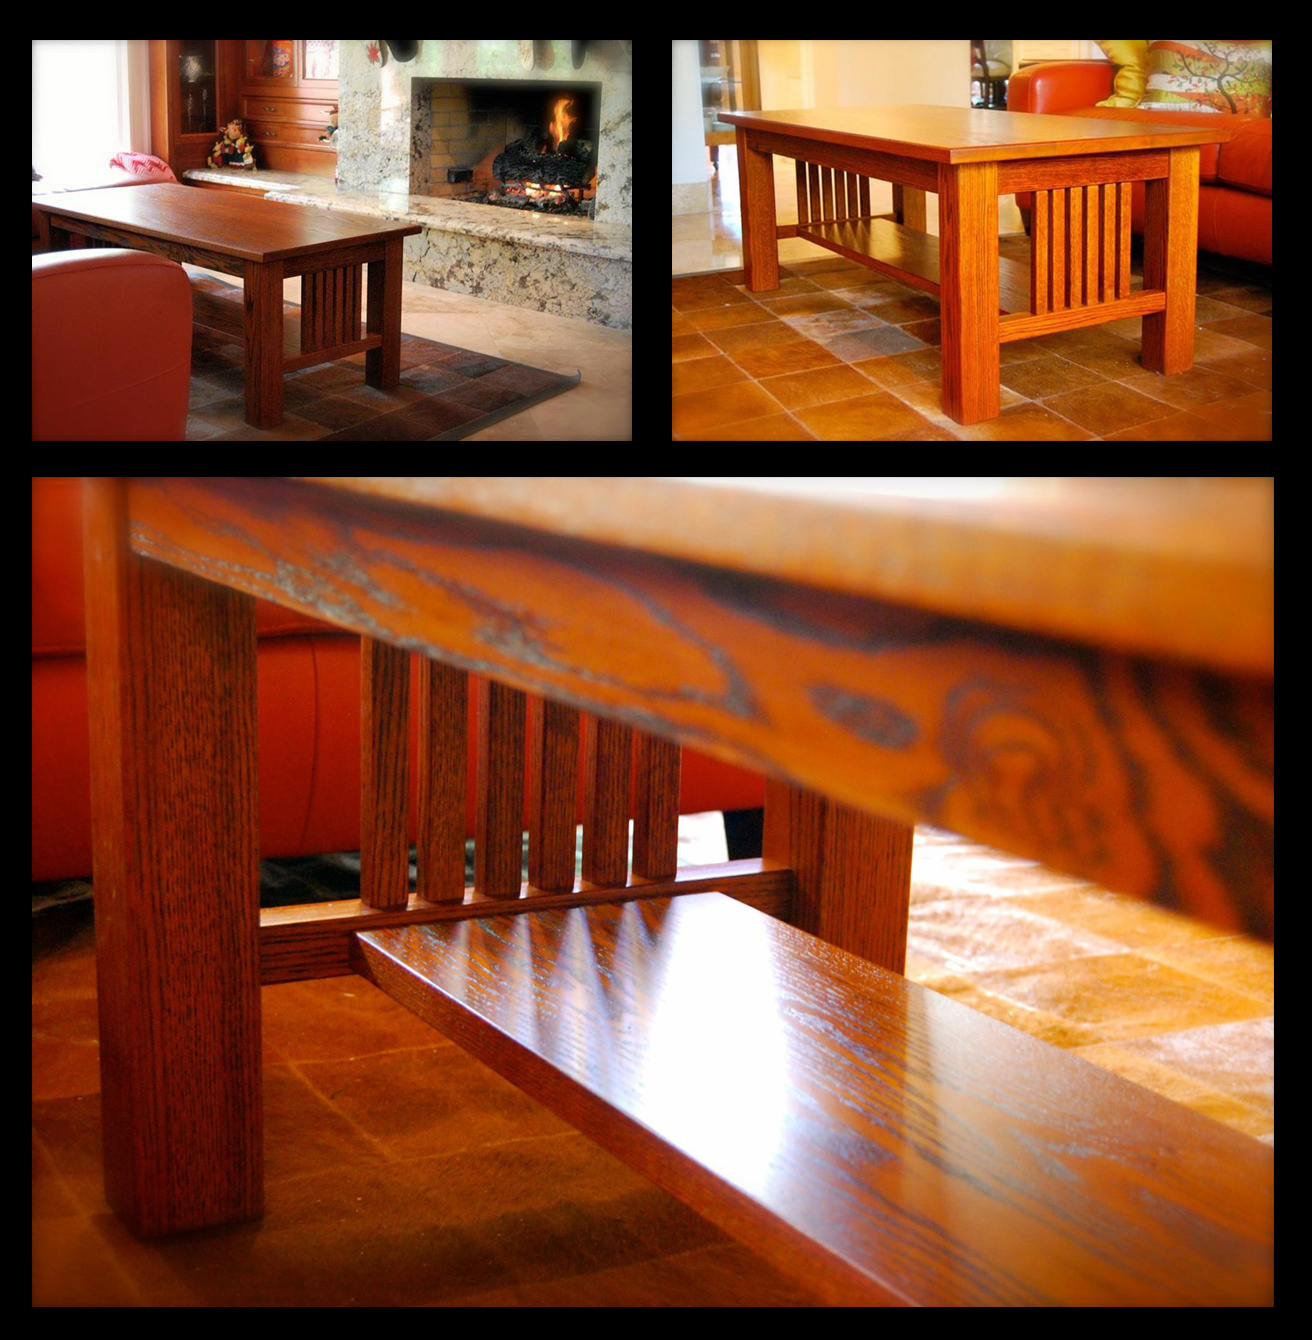 Mixing Wood Stains Furniture Design Ideas Featuring Dye Stains General Finishes